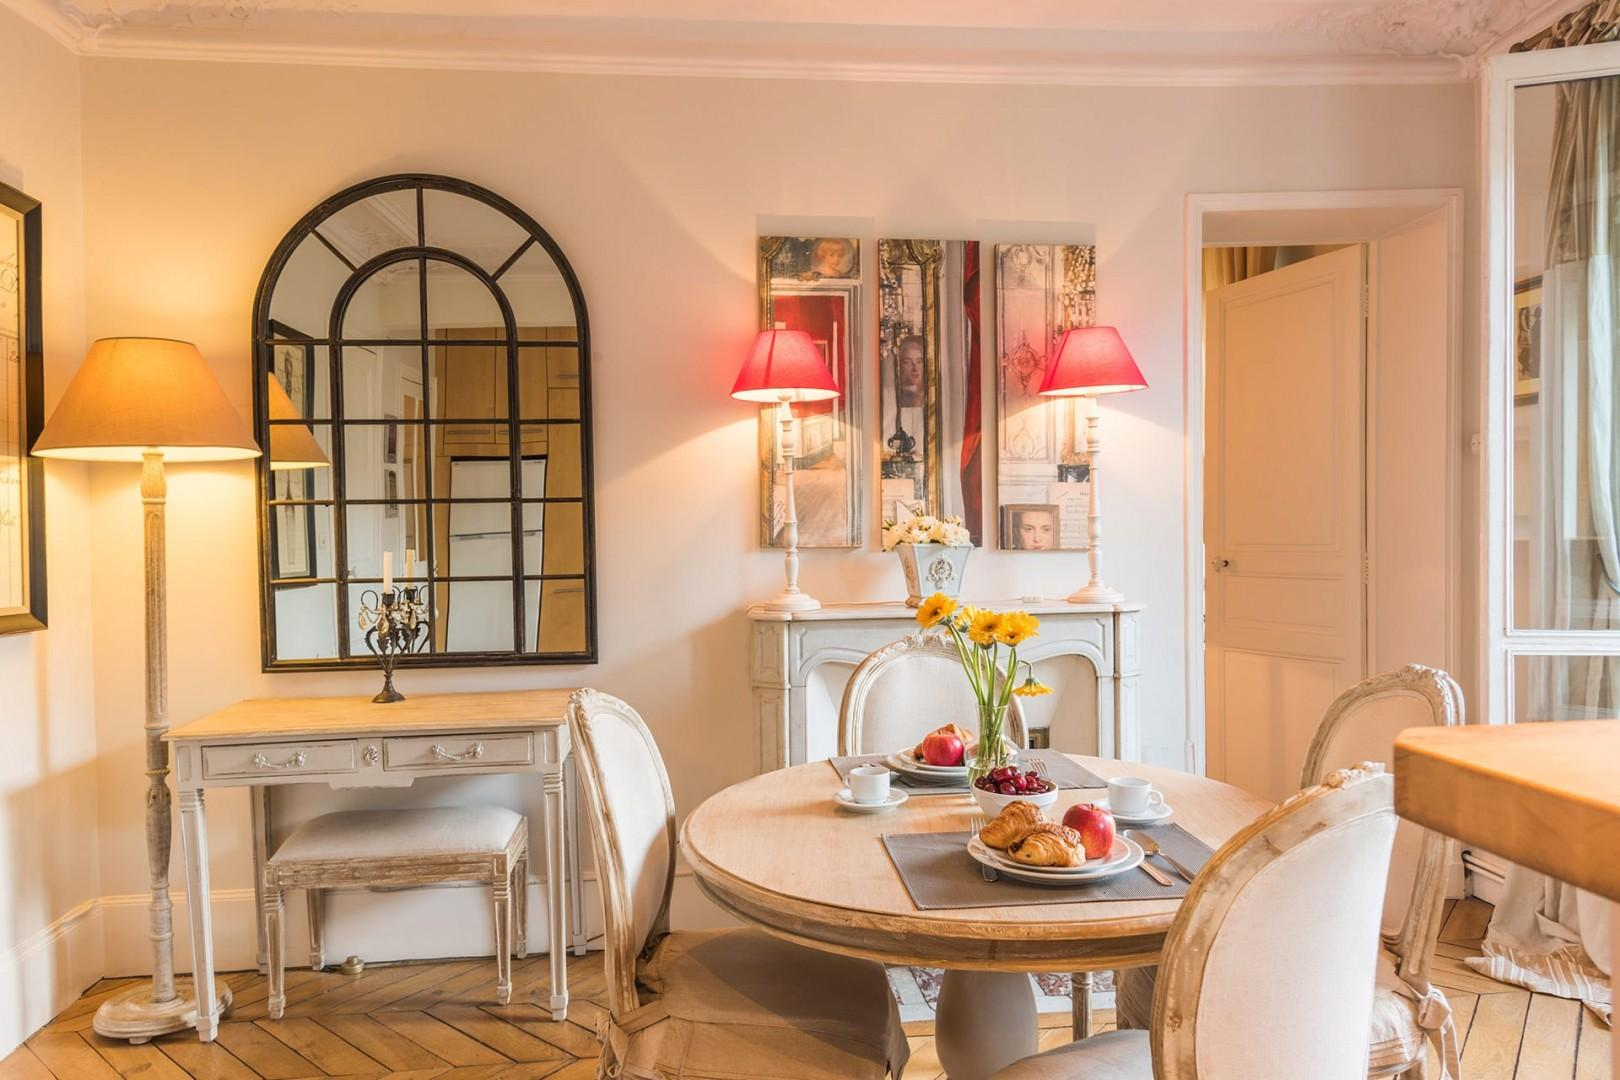 The dining room is perfect for romantic dinners at home.